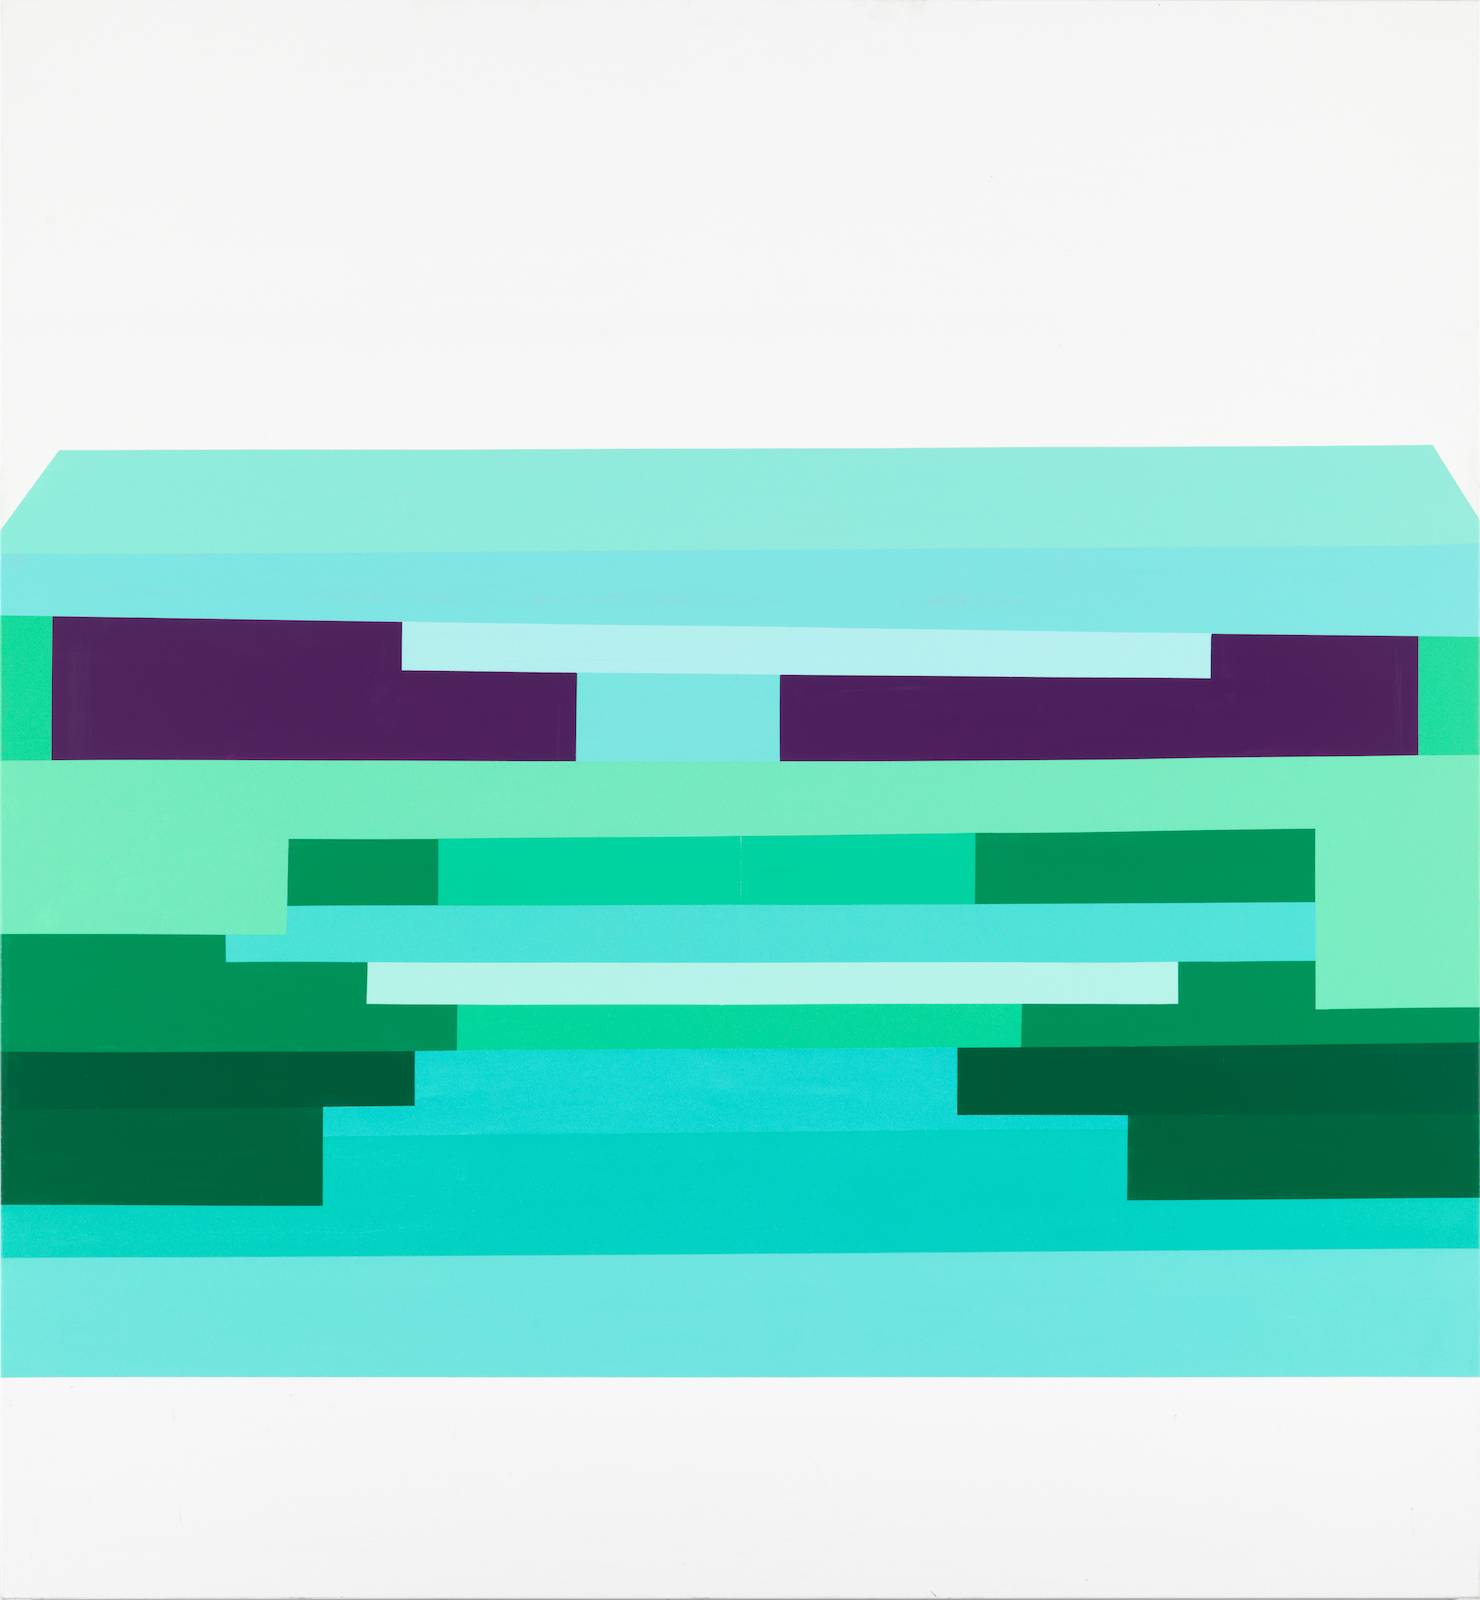 Panorama/The Second Generation, No.06, 2011/12, acrylic on canvas, 265 x 245 cm